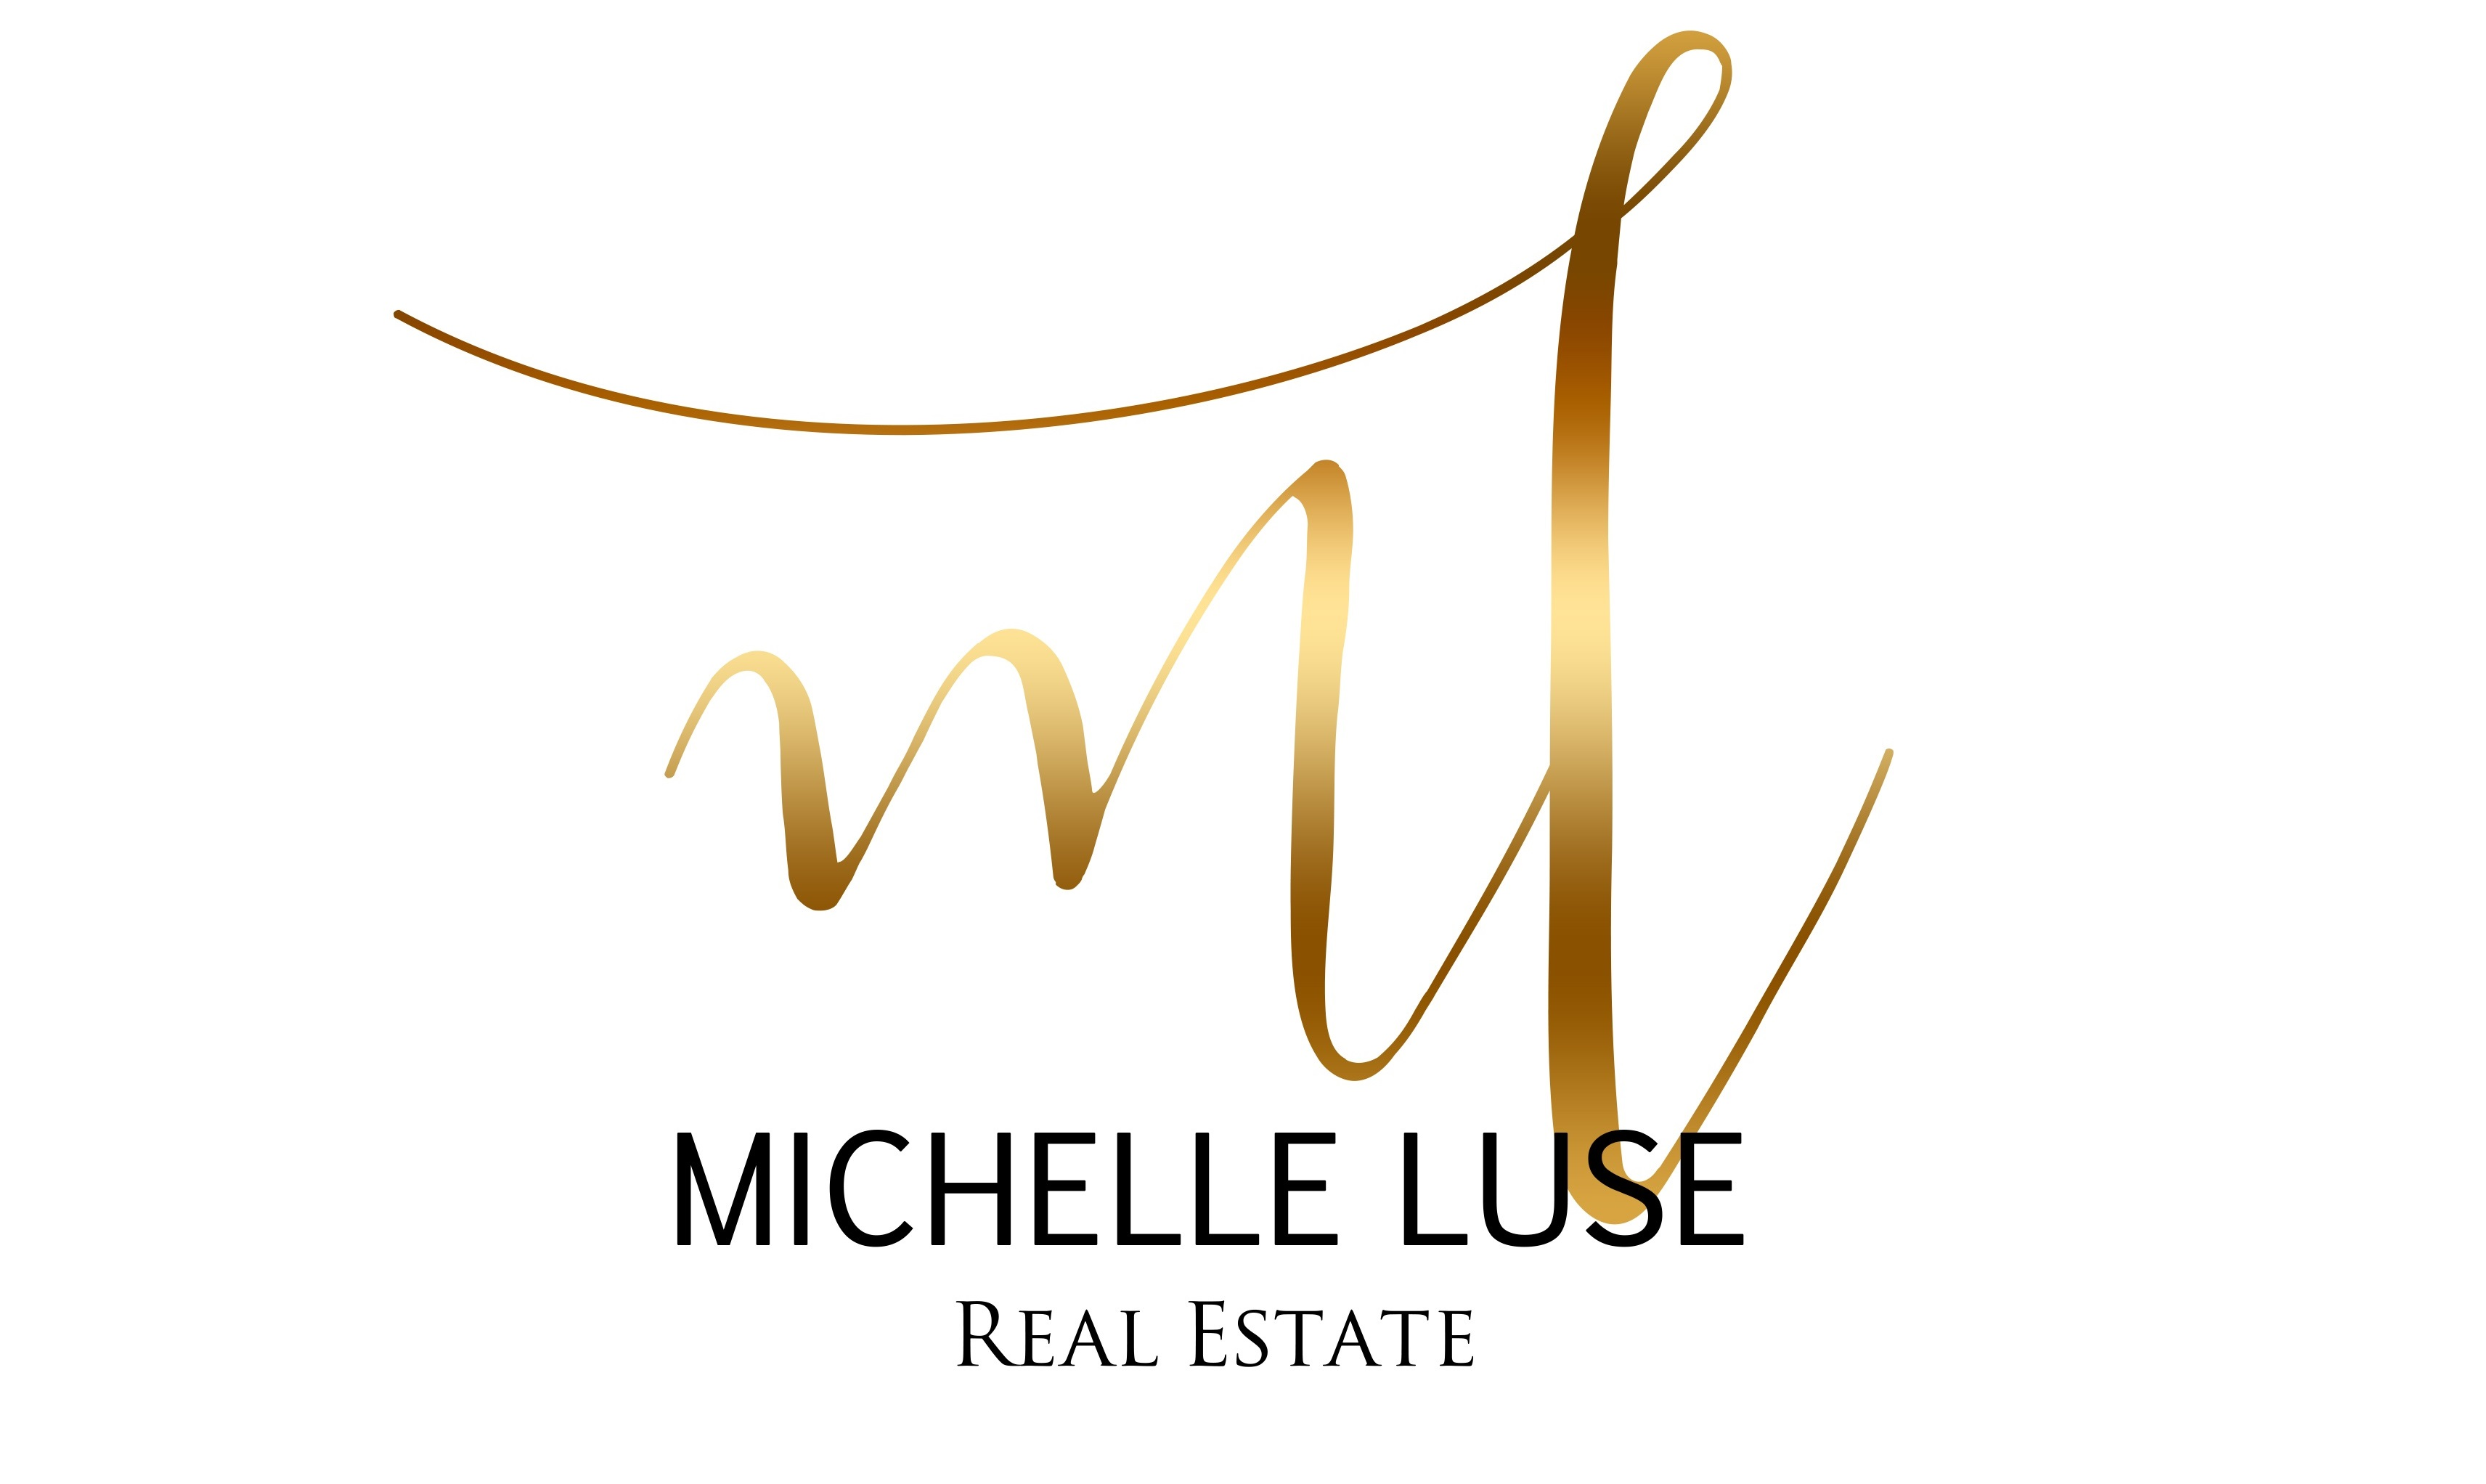 Michelle Luse Real Estate